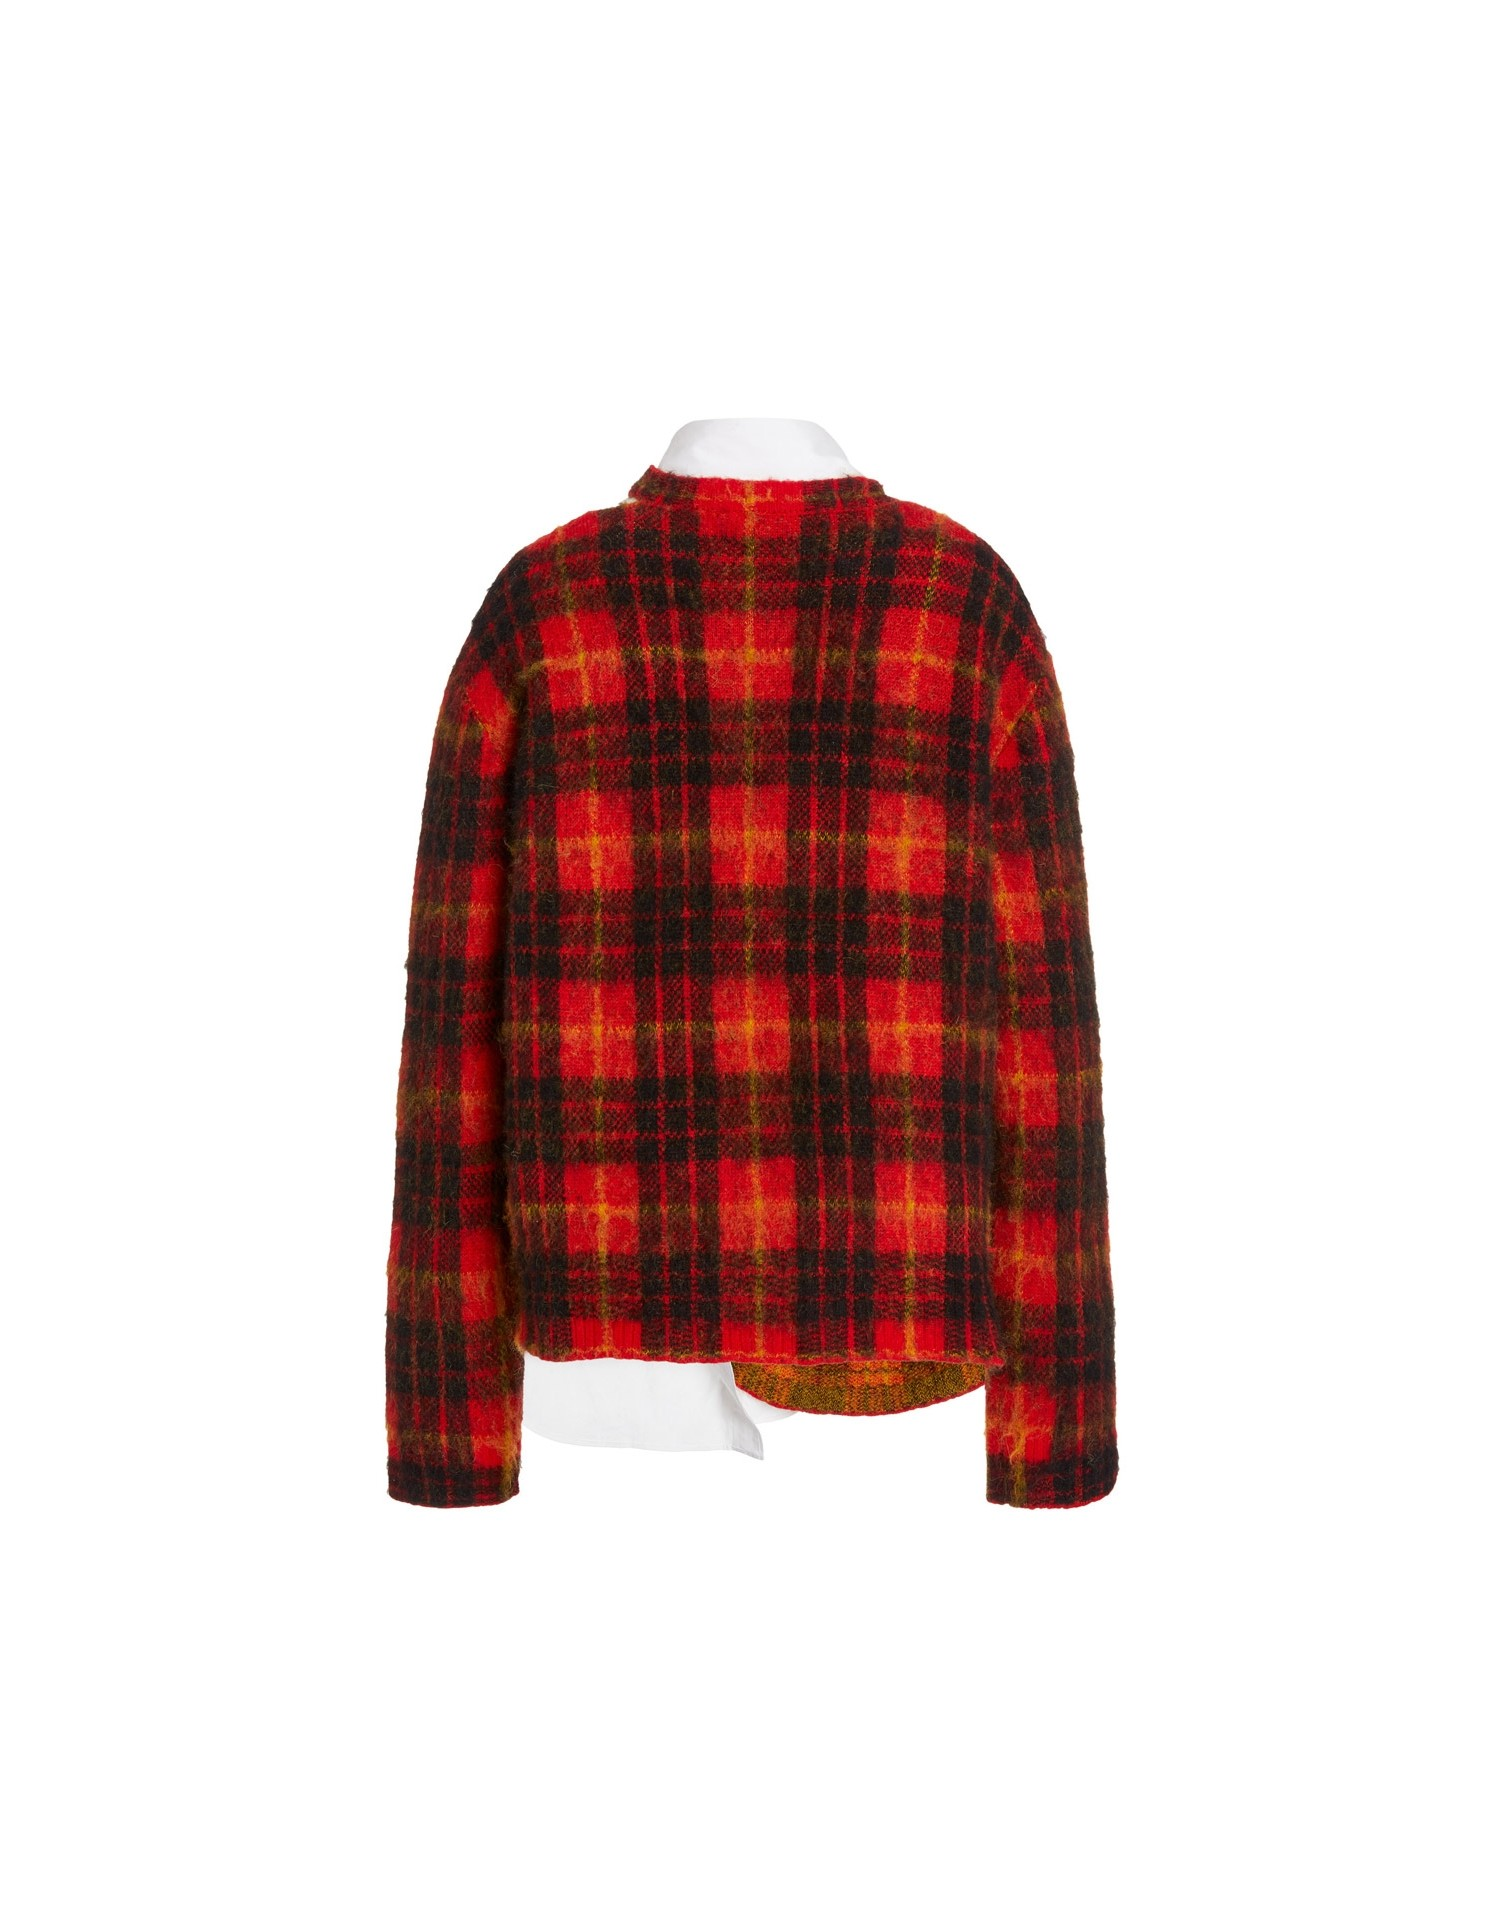 MONSE Tartan Crooked Tail Pullover in Scarlet Multi Flat Back